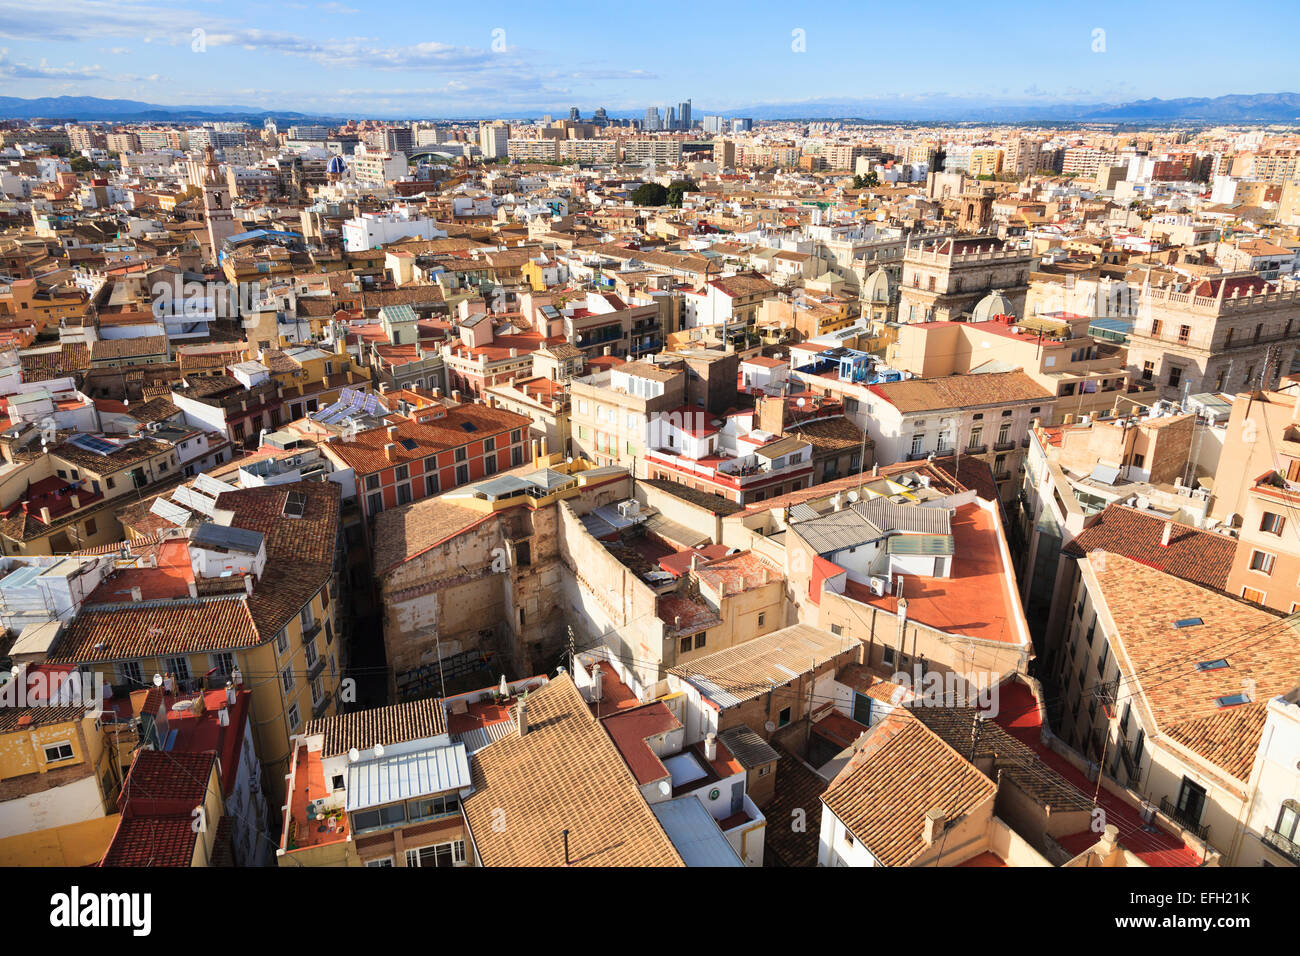 Rooftop cityscape of Valencia in Spain - Stock Image